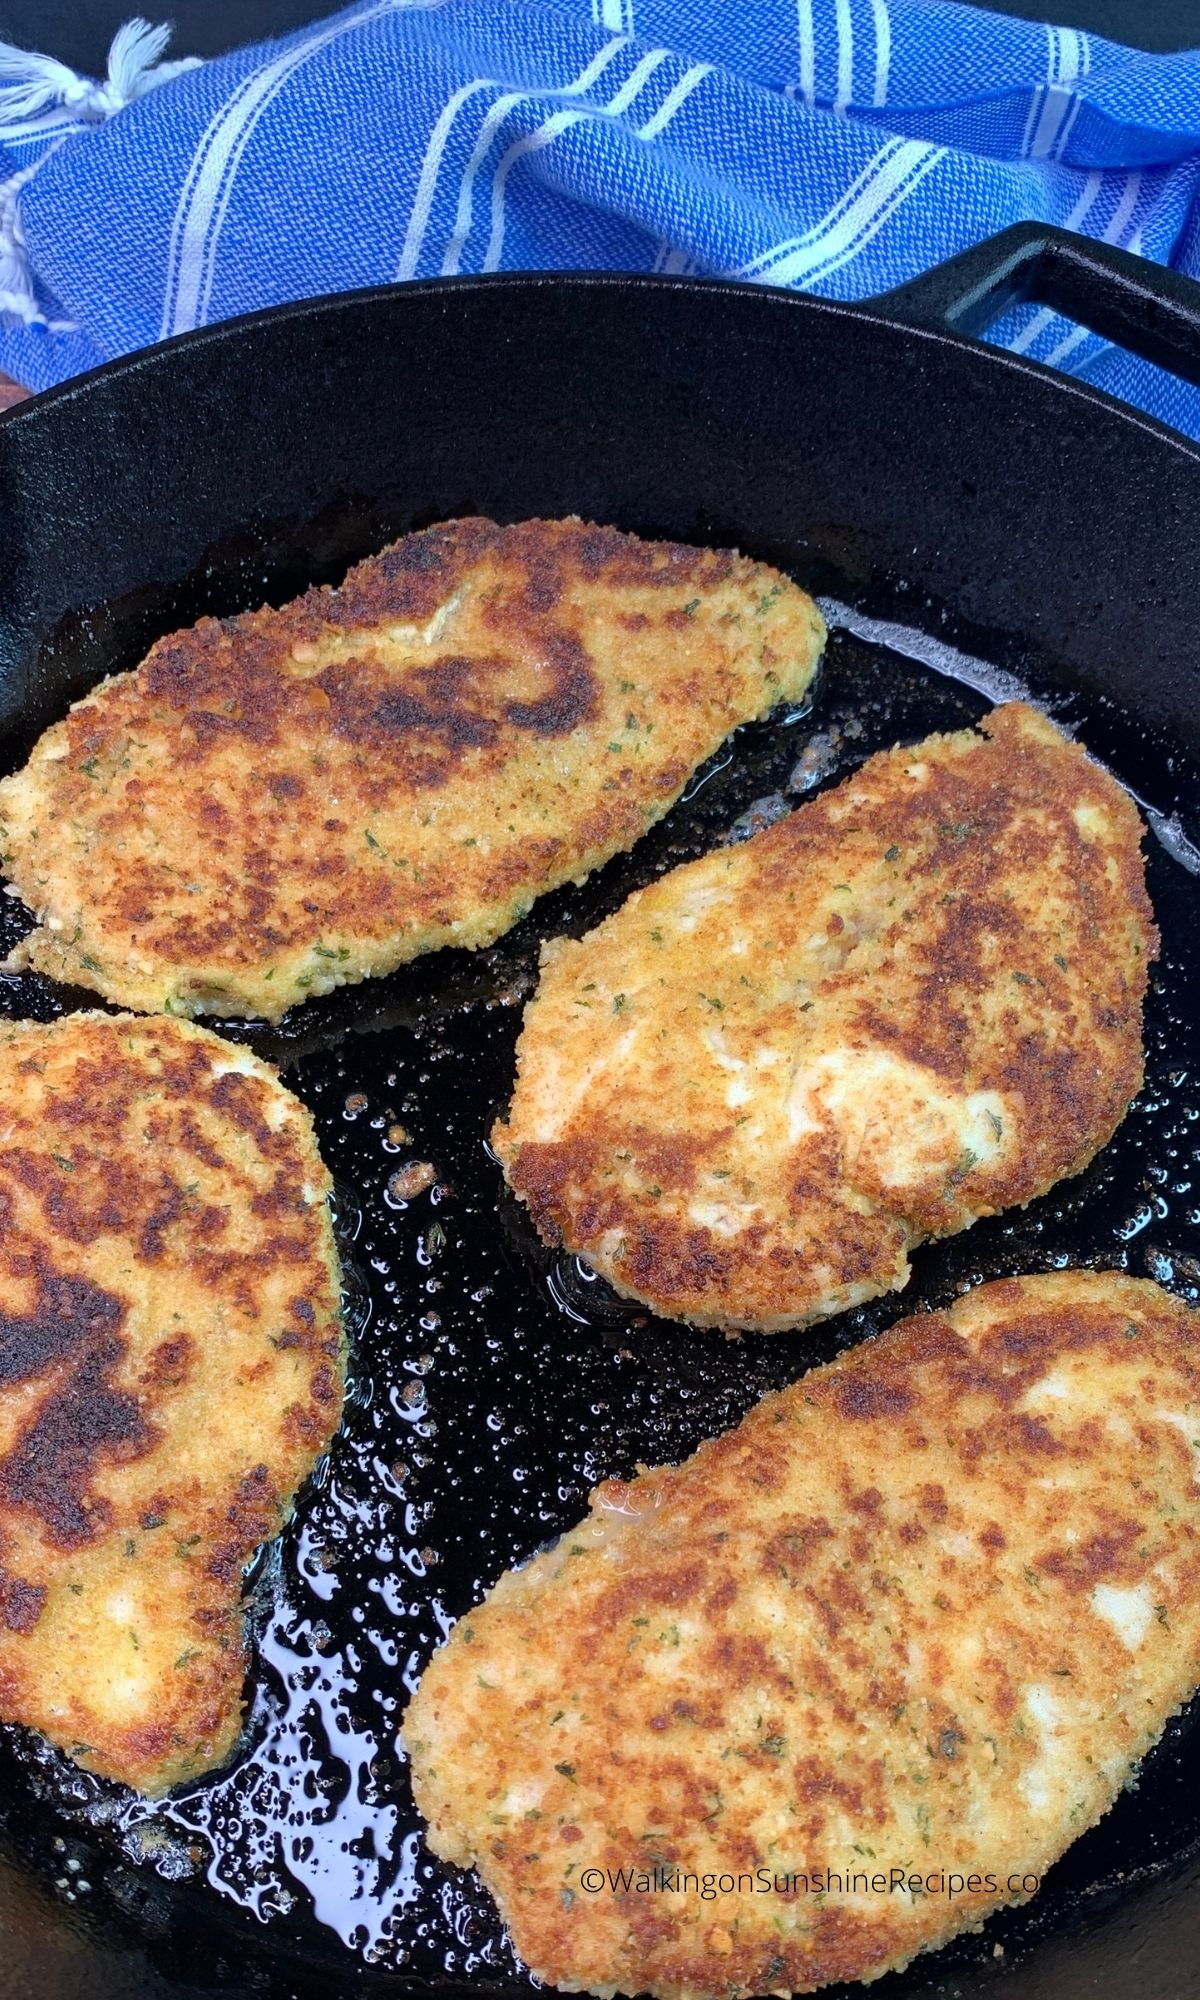 Chicken cutlets in cast iron skillet cooked.